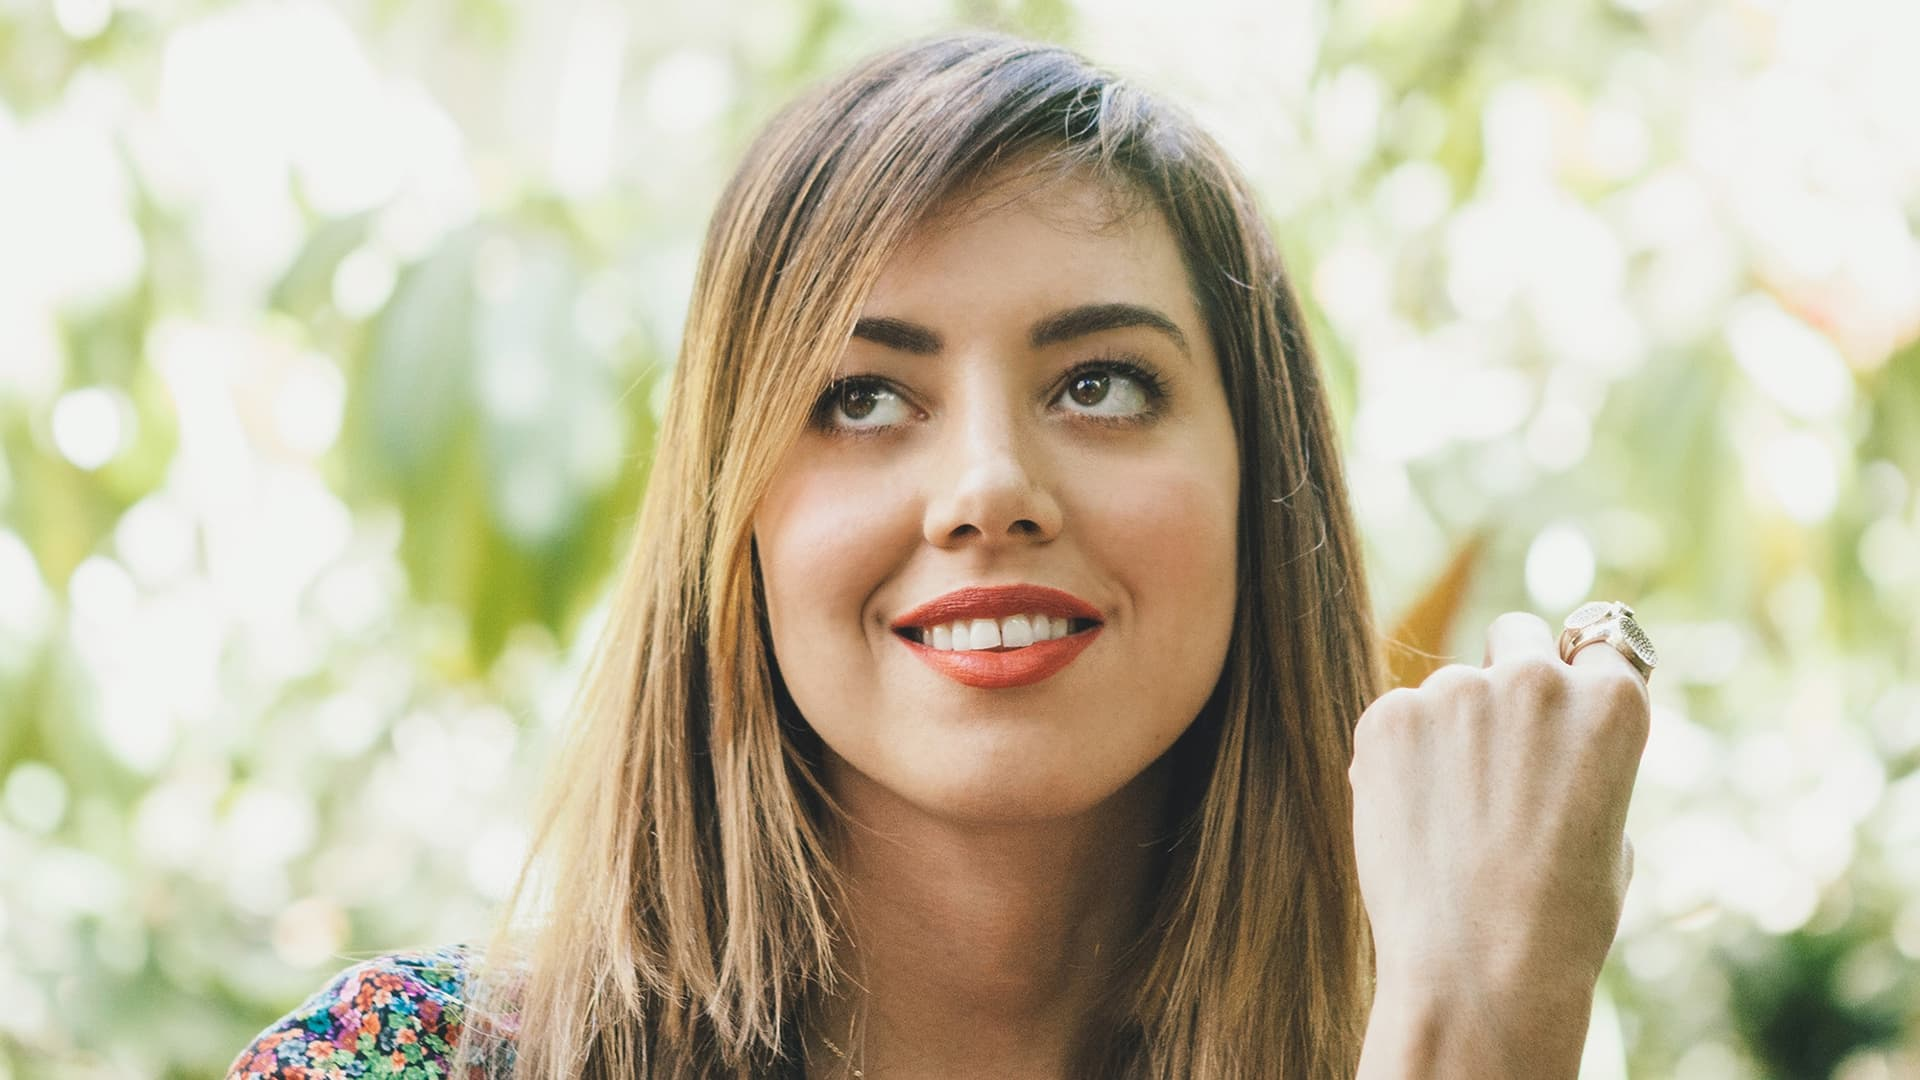 Aubrey Plaza wallpapers HD HIgh Quality Resolution Download